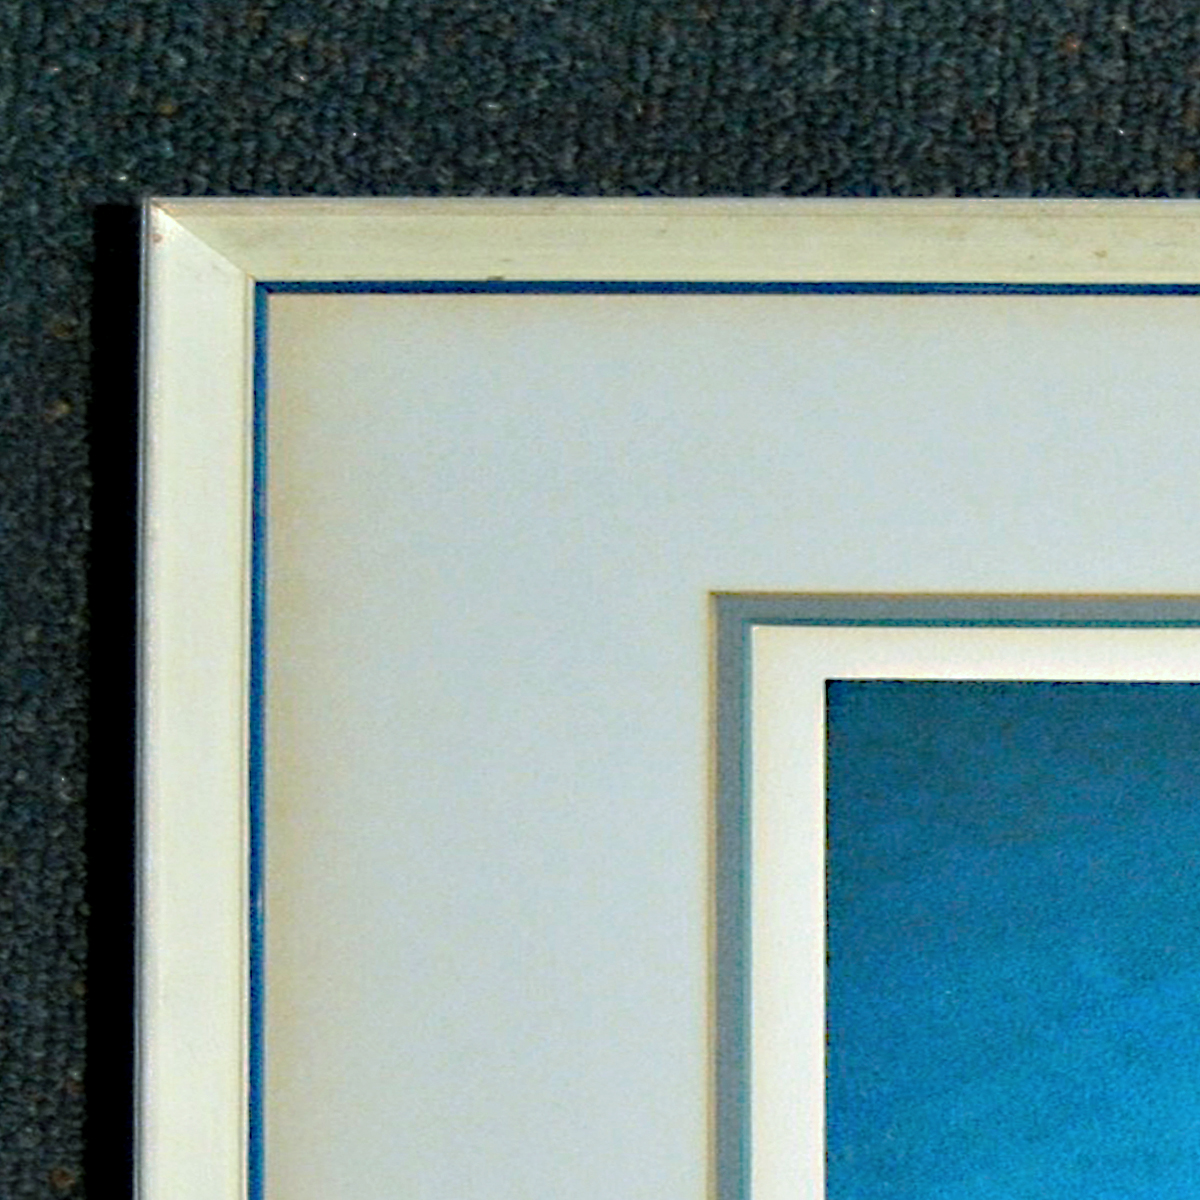 This detail shows the yellowing of the grey mat next to the frame, plus the second mat had started to turn green from it's original blue shade.